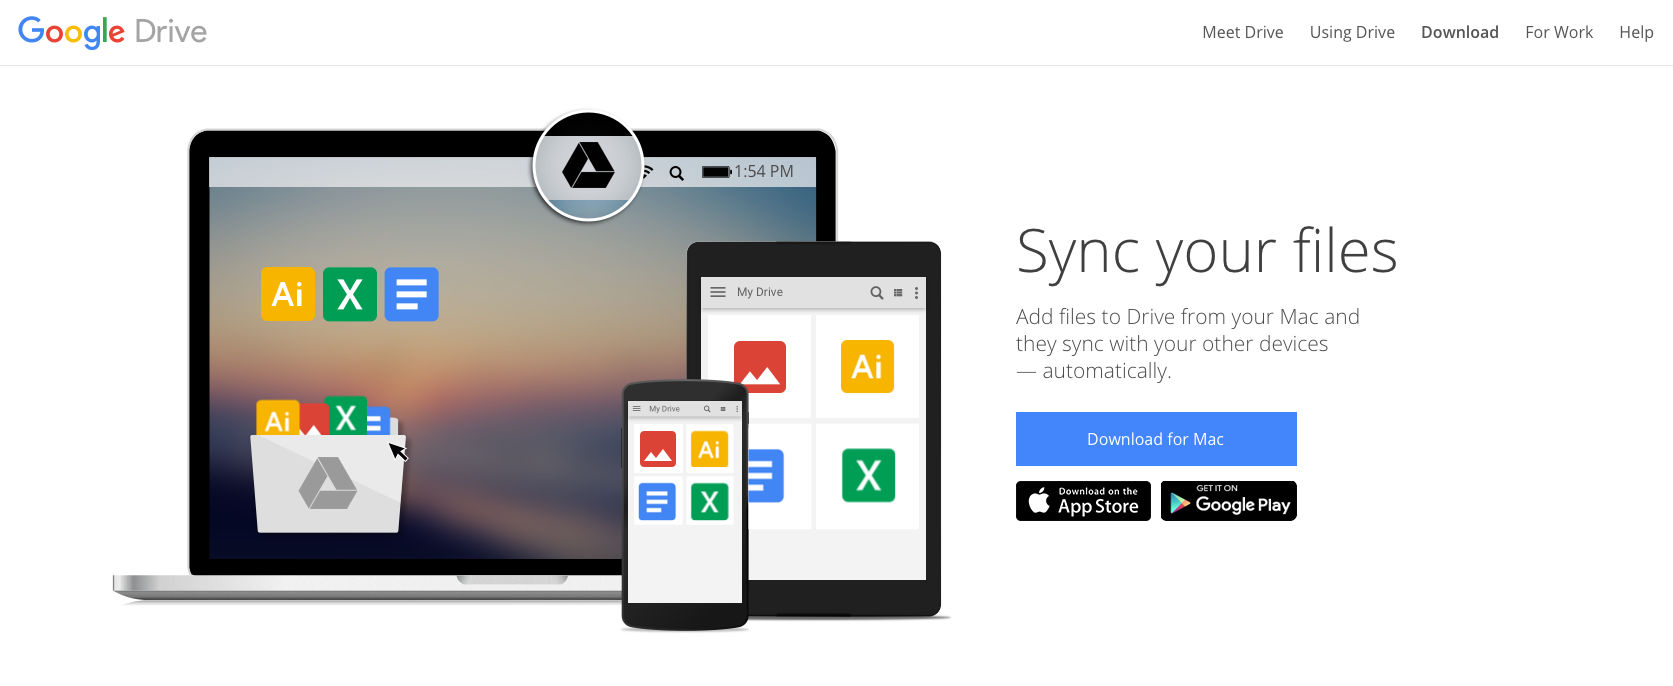 Download The Google Drive Sync Client